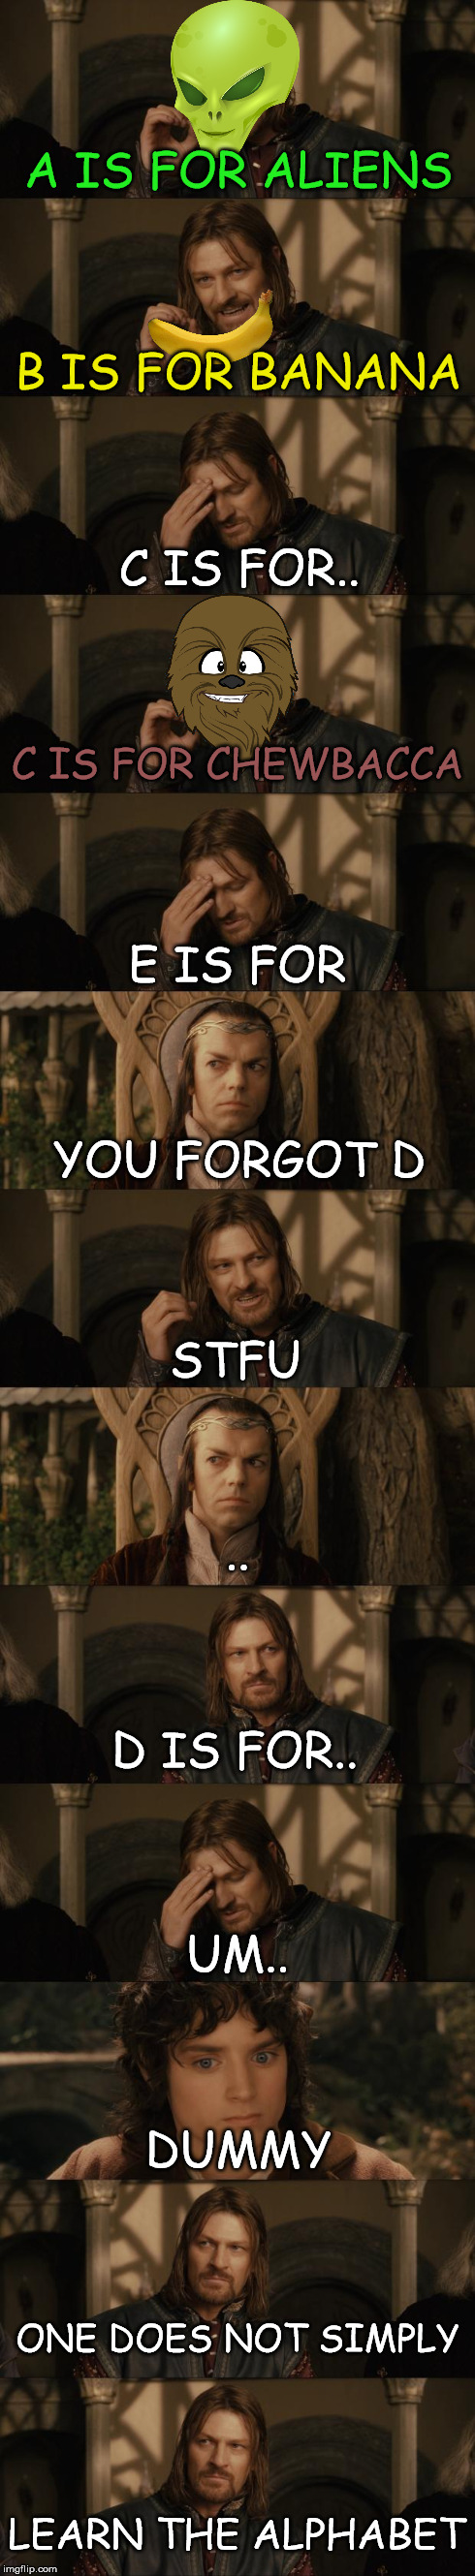 Boromir Learns His ABC's | A IS FOR ALIENS B IS FOR BANANA C IS FOR.. C IS FOR CHEWBACCA E IS FOR YOU FORGOT D STFU .. D IS FOR.. UM.. DUMMY ONE DOES NOT SIMPLY LEARN  | image tagged in one does not simply,alphabet,abc | made w/ Imgflip meme maker